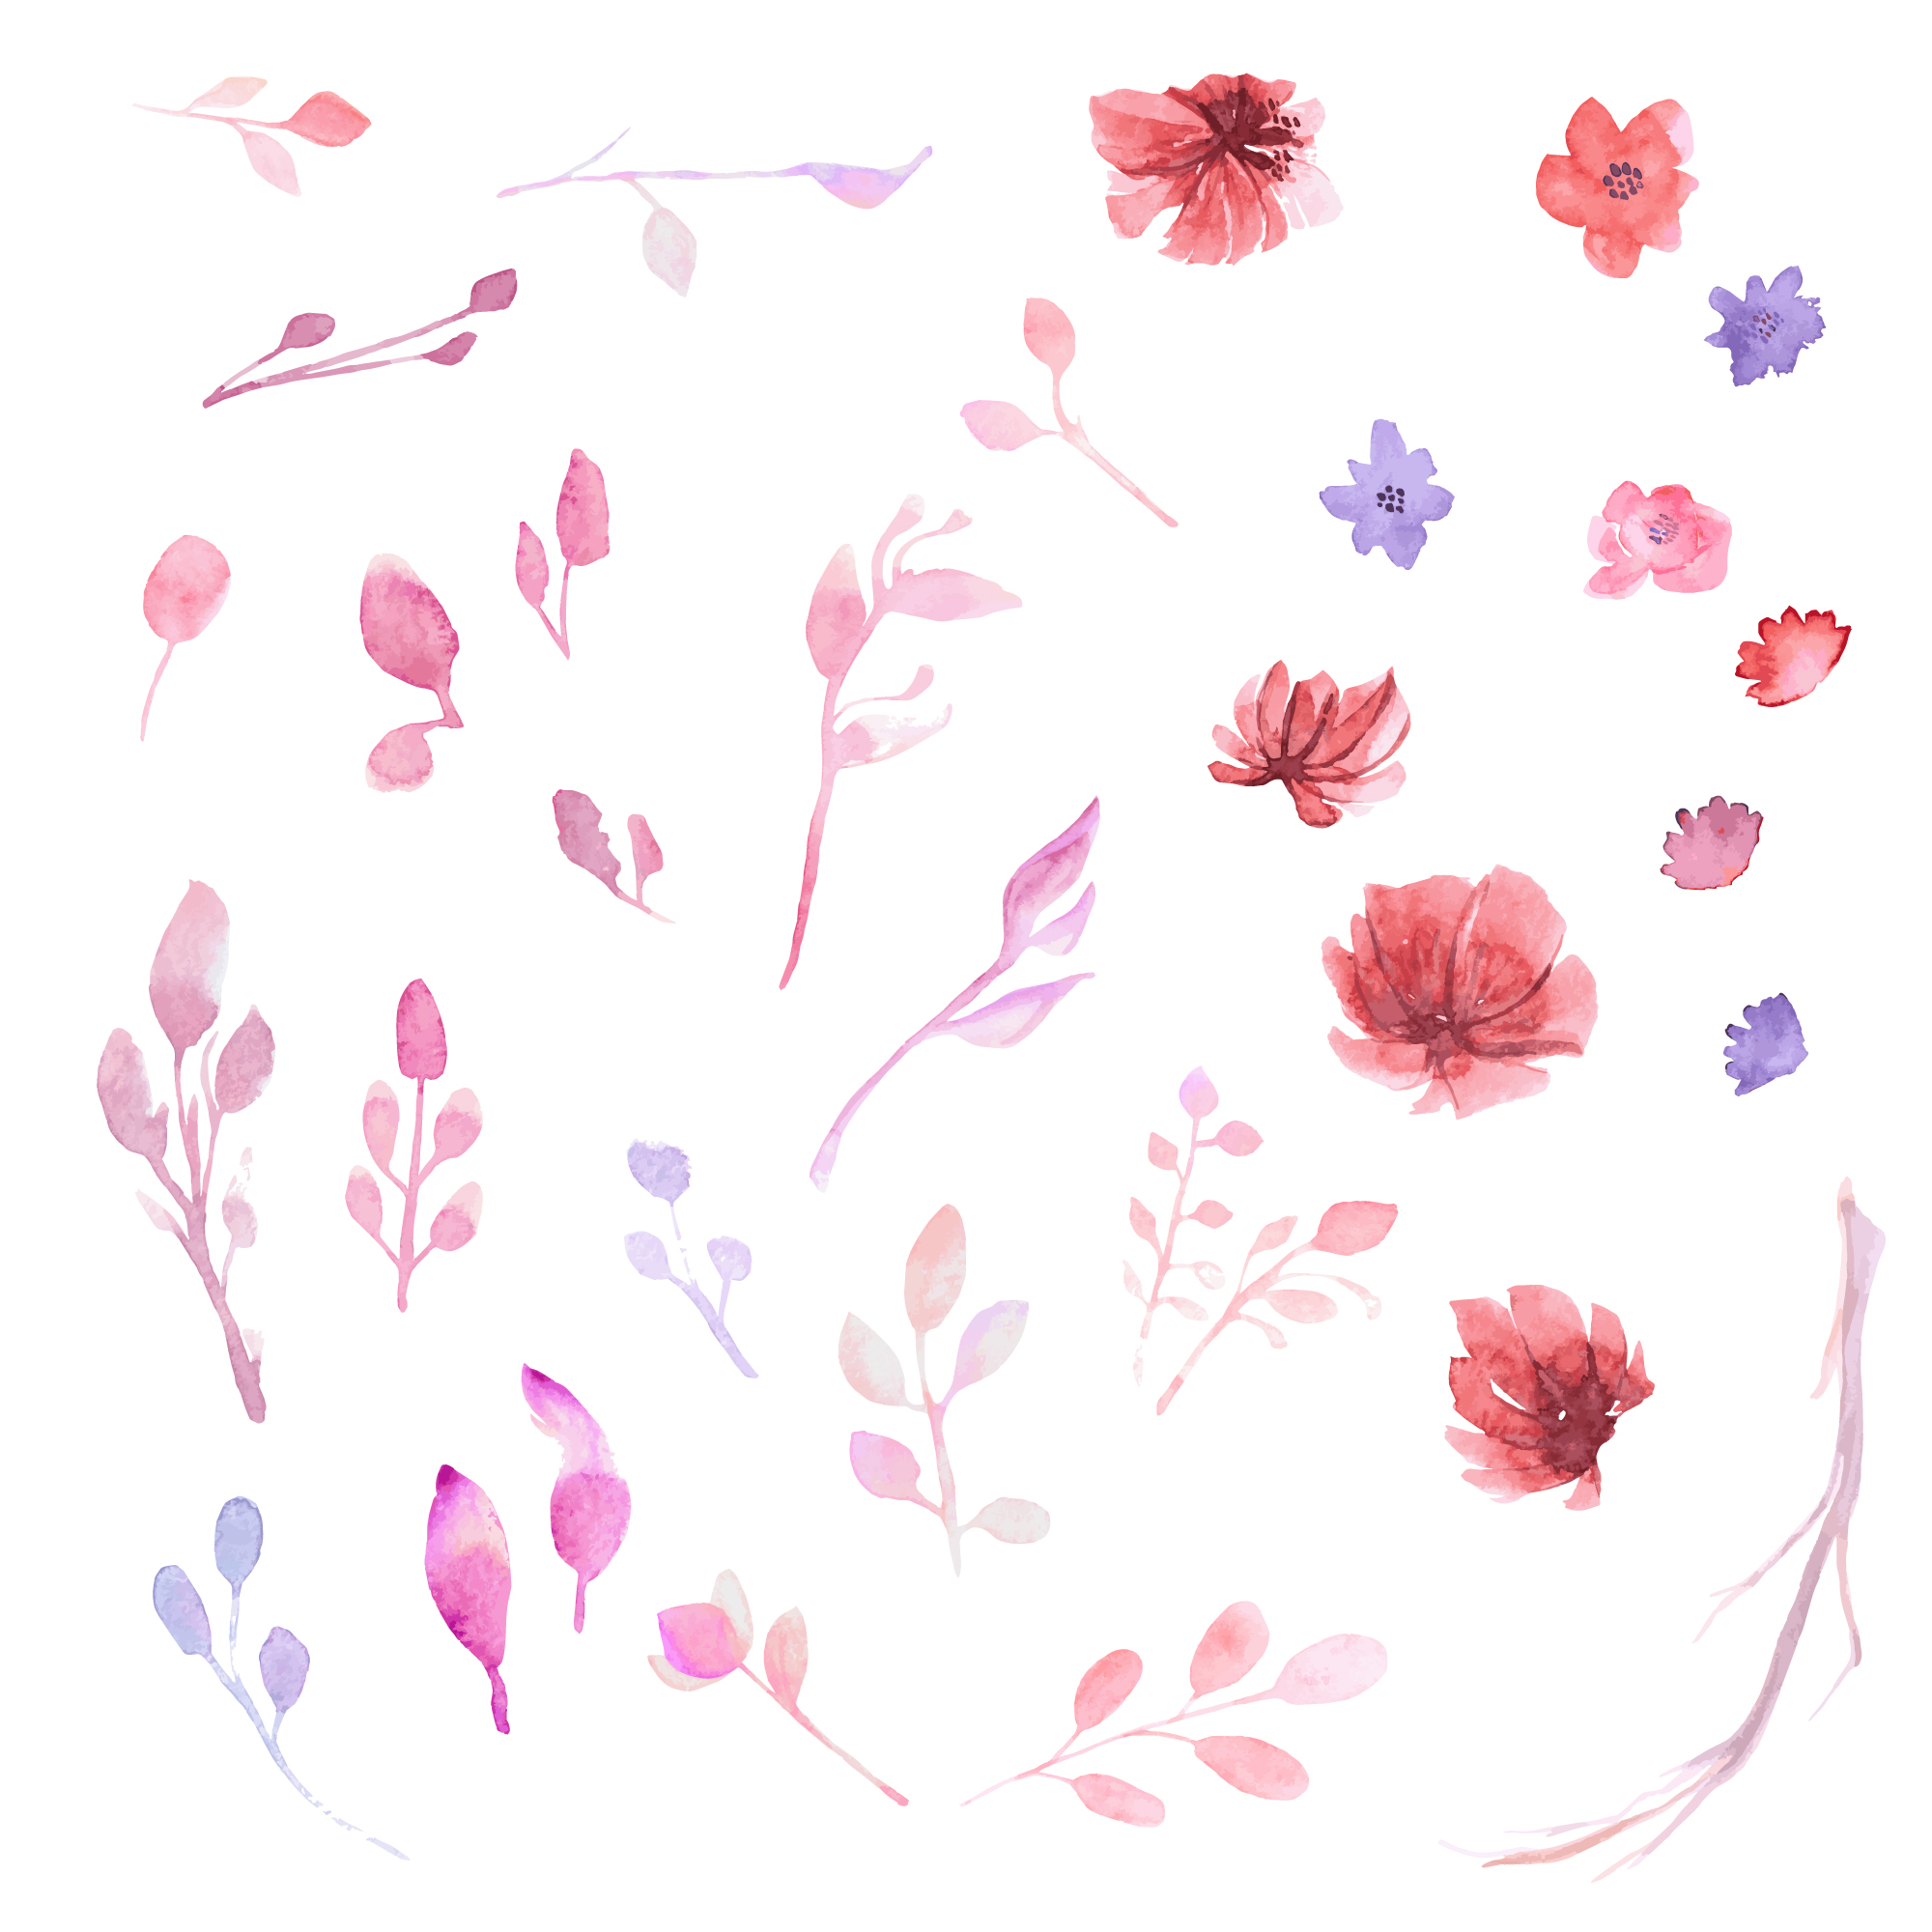 Watercollor flower collection